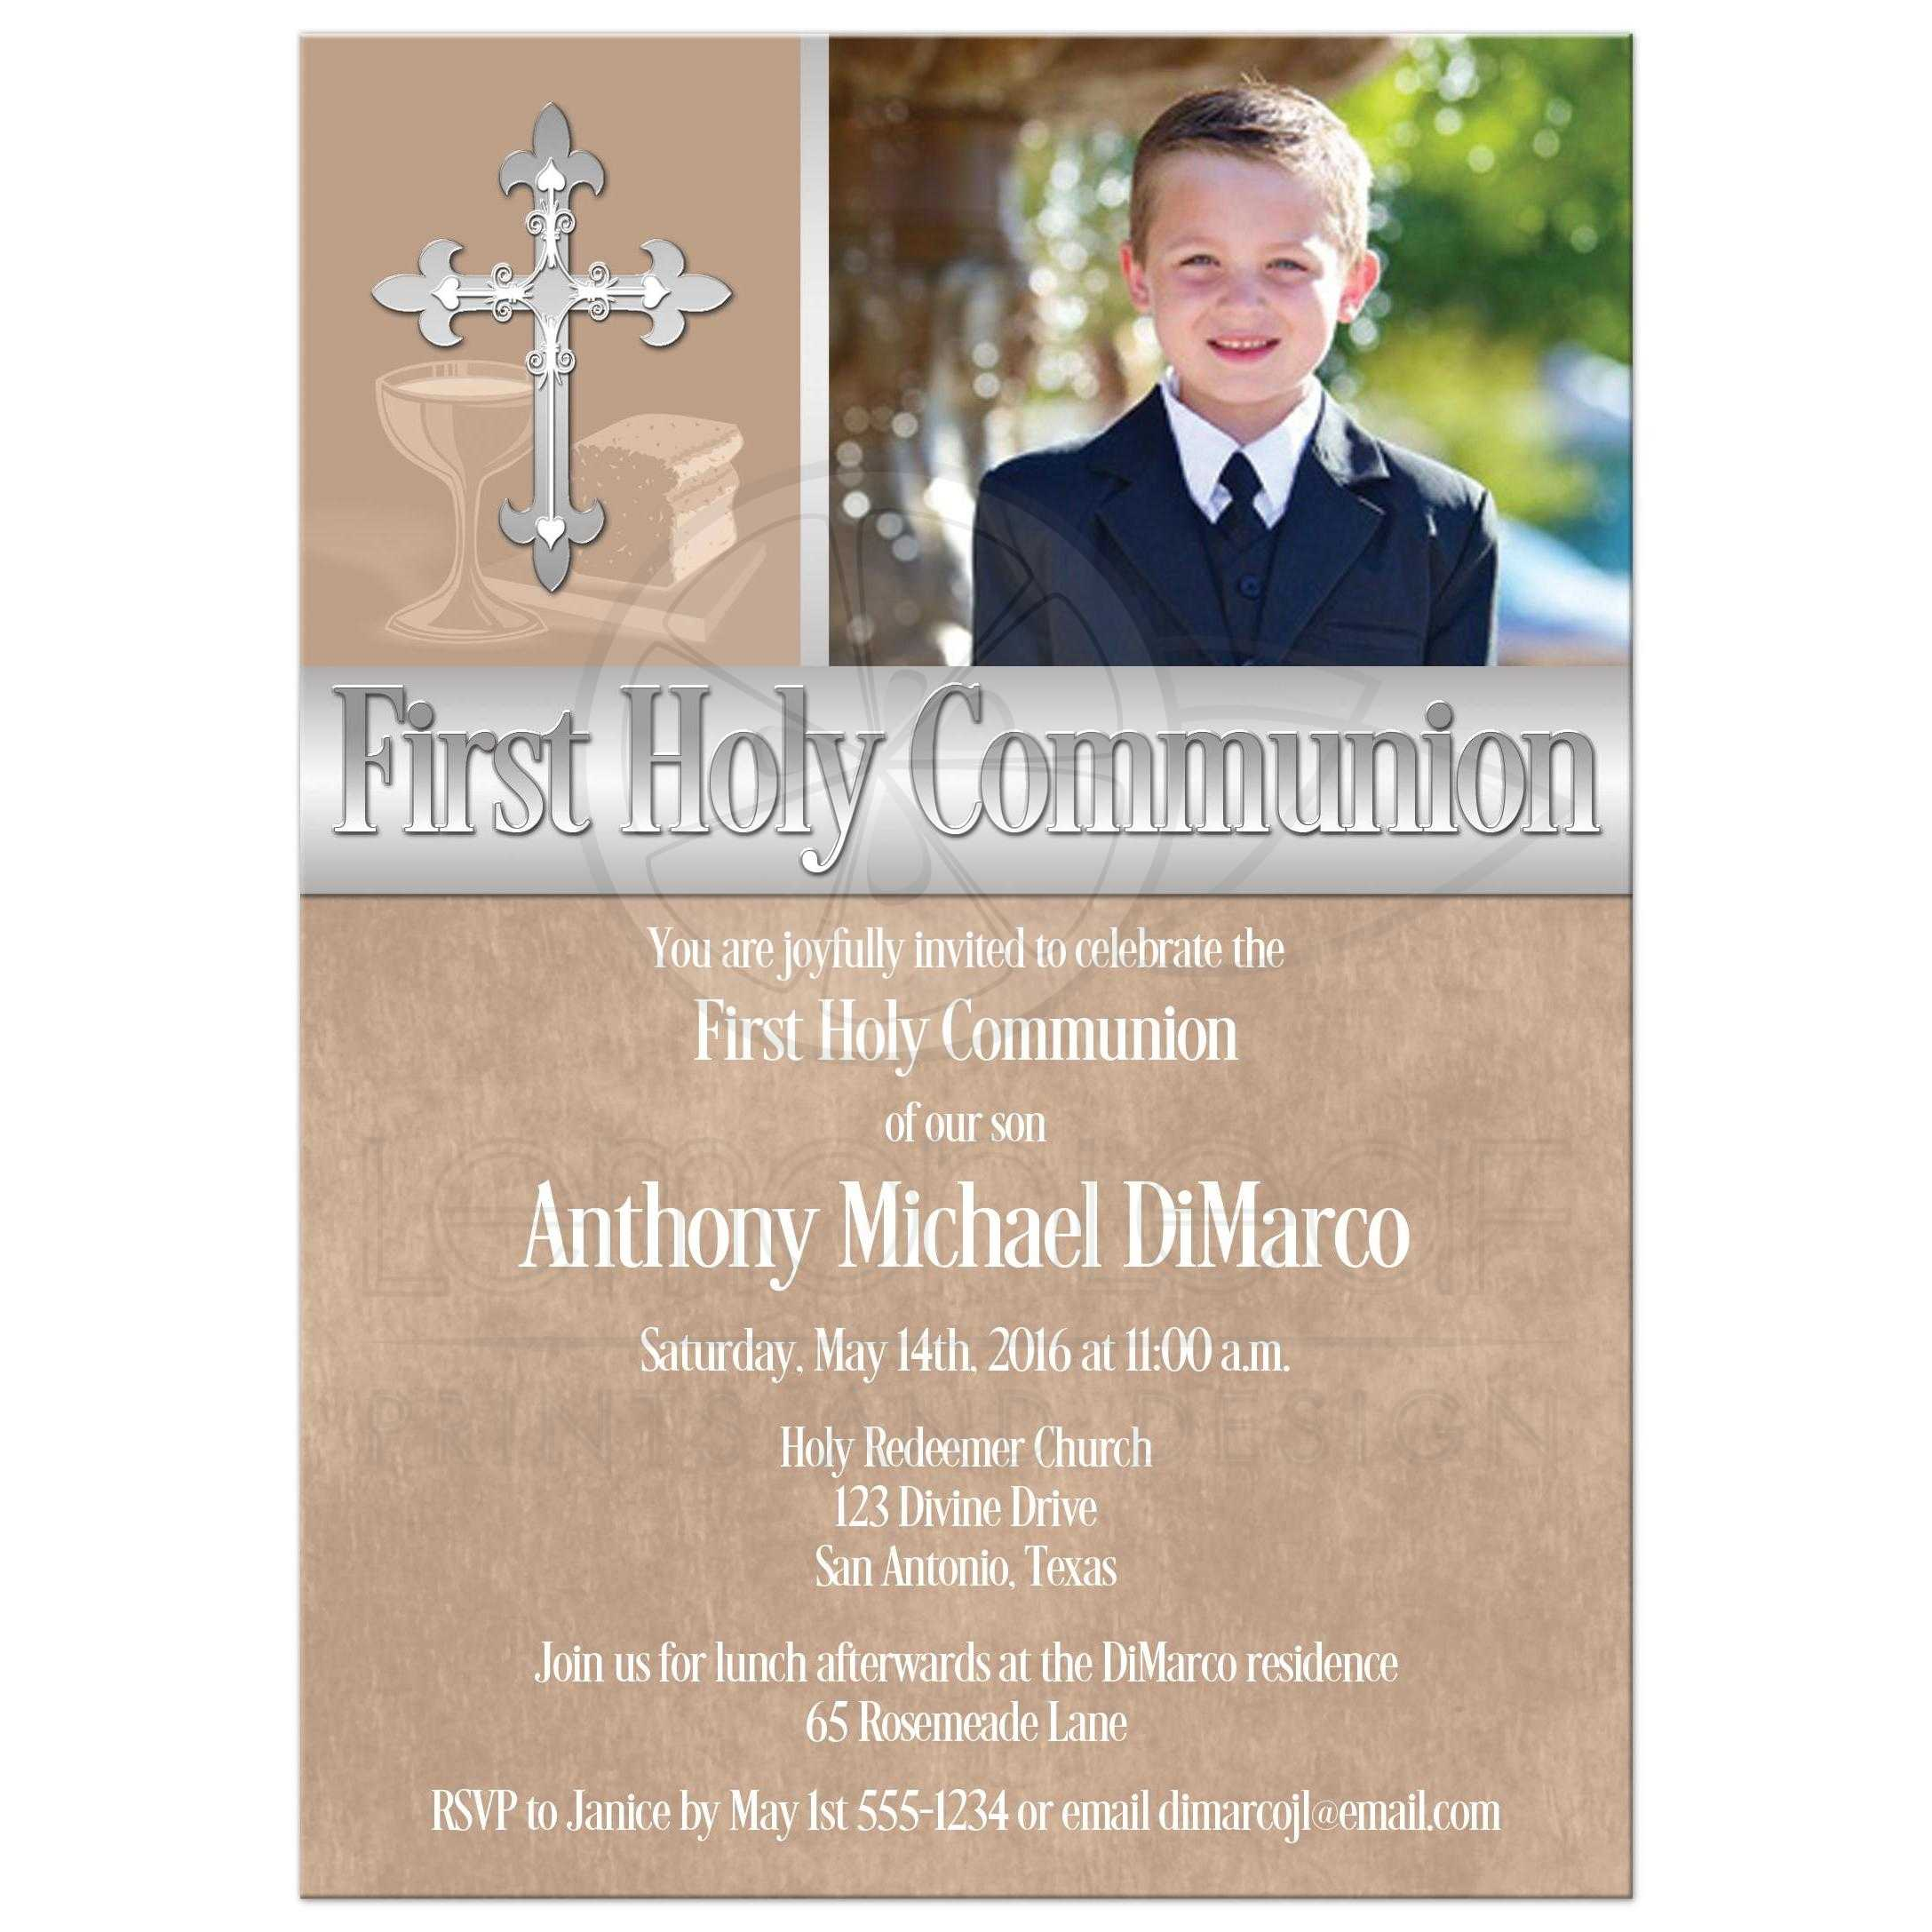 First Holy Communion Invitation Photo Template Brown